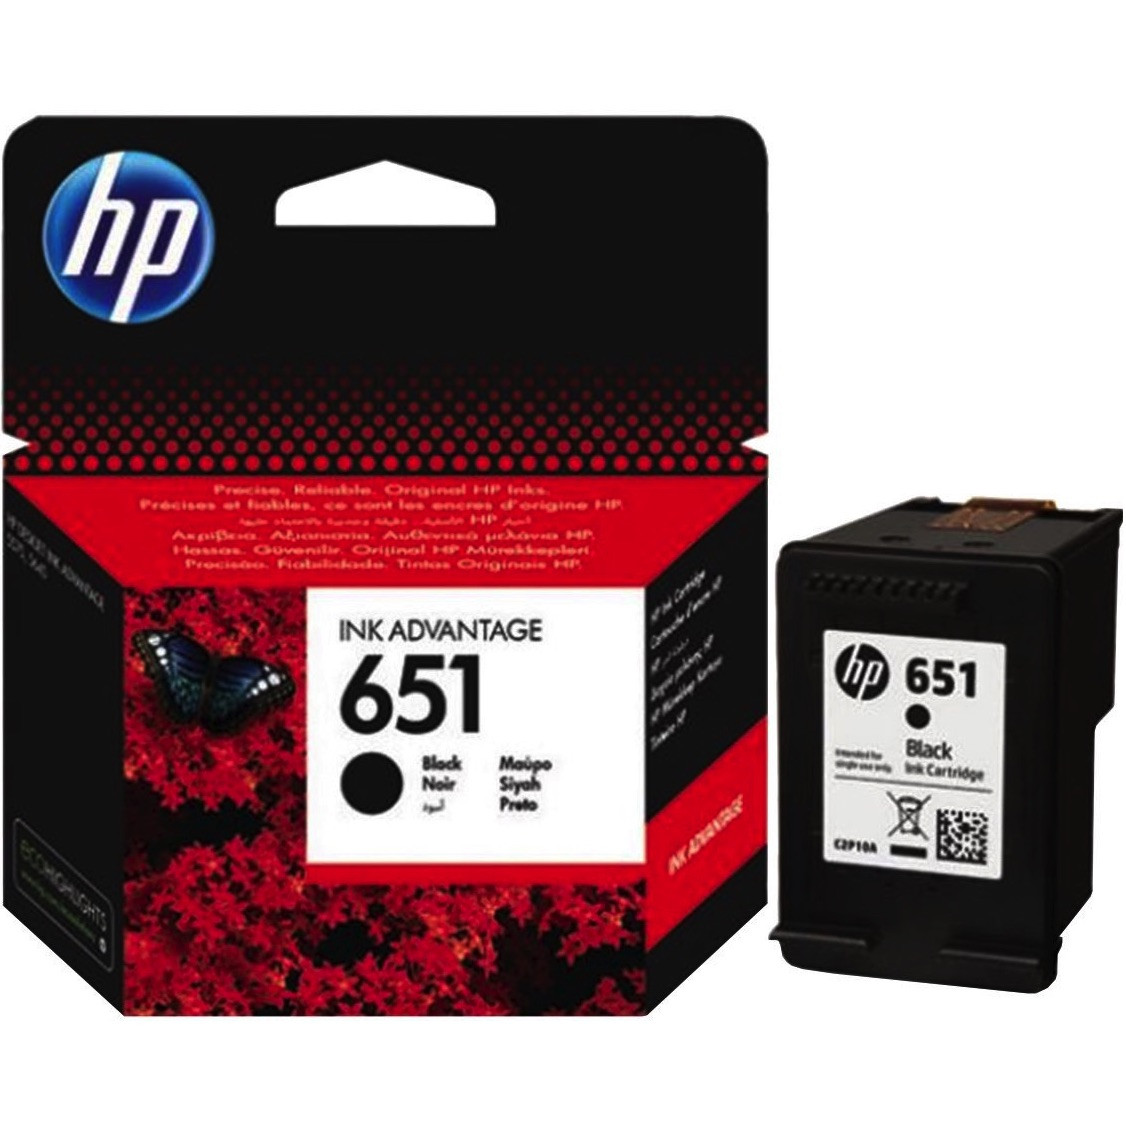 Картридж HP для Deskjet 5575, Officejet 202. HP 651 Black (C2P10AE)